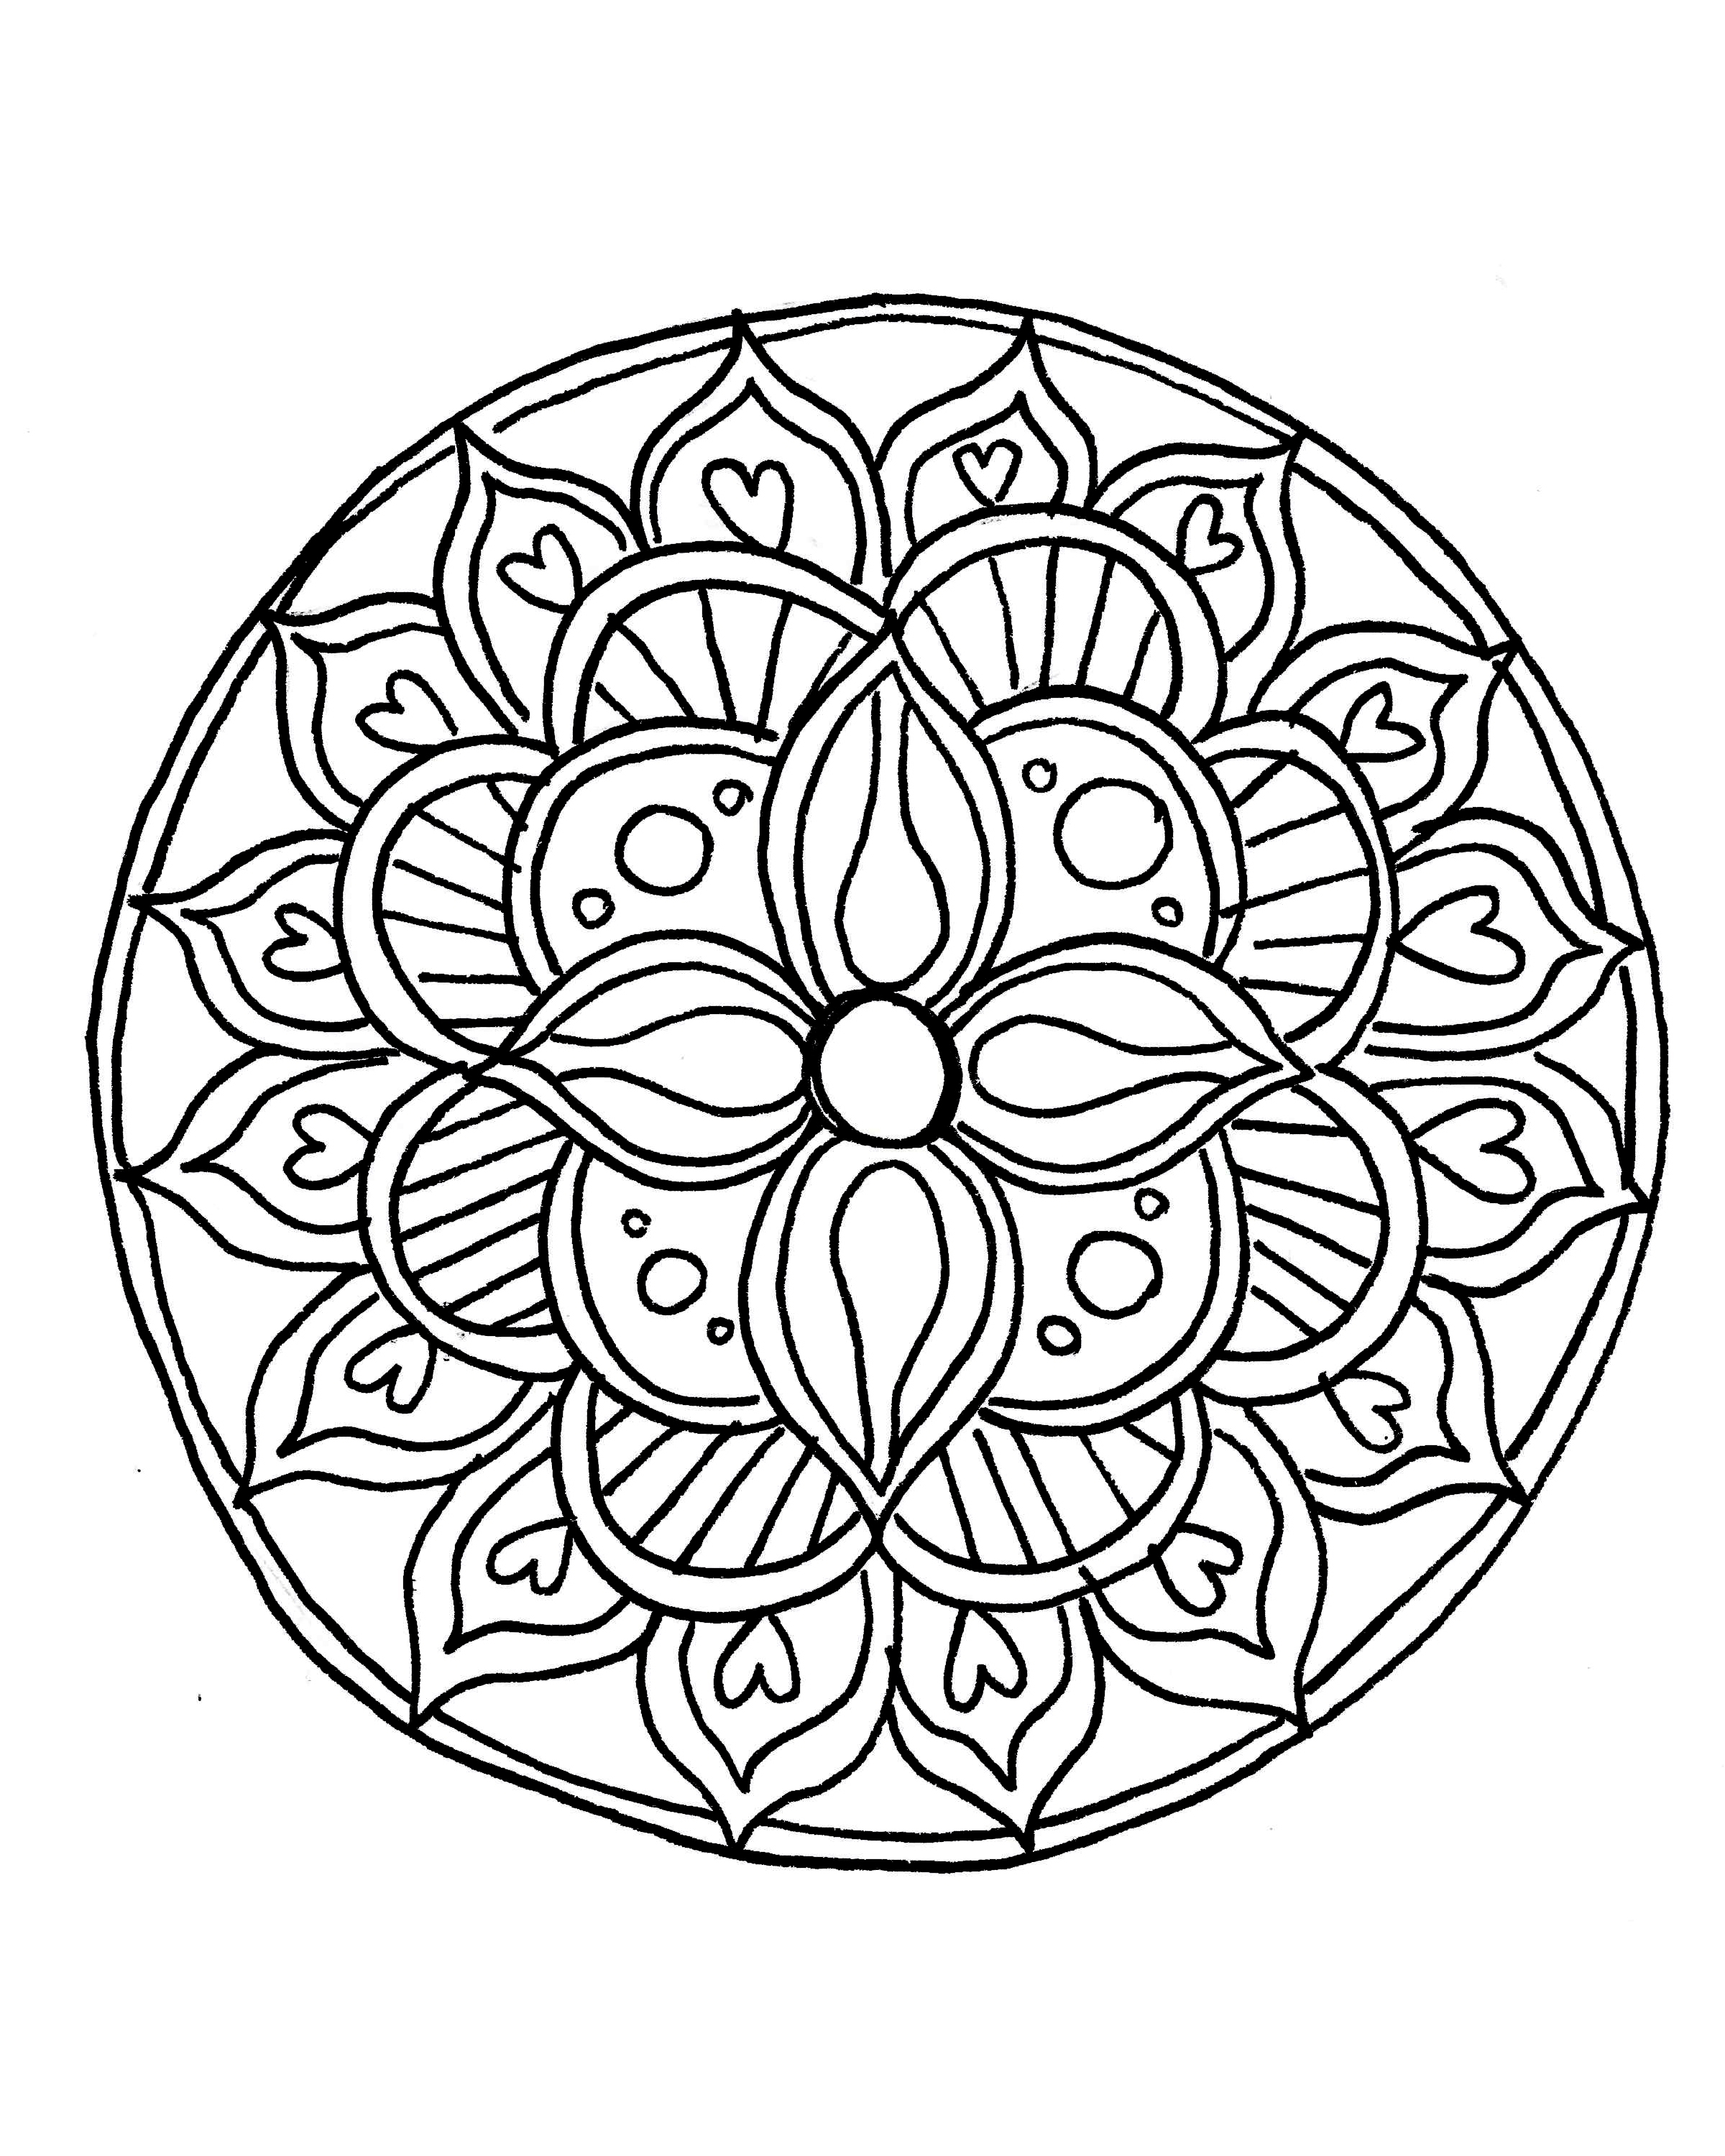 Printable Mandala Coloring Pages for Kids Free Free Coloring Books Printable Of Modern Intricate Mandala Coloring Pages Coloring for Good Mandala to Print